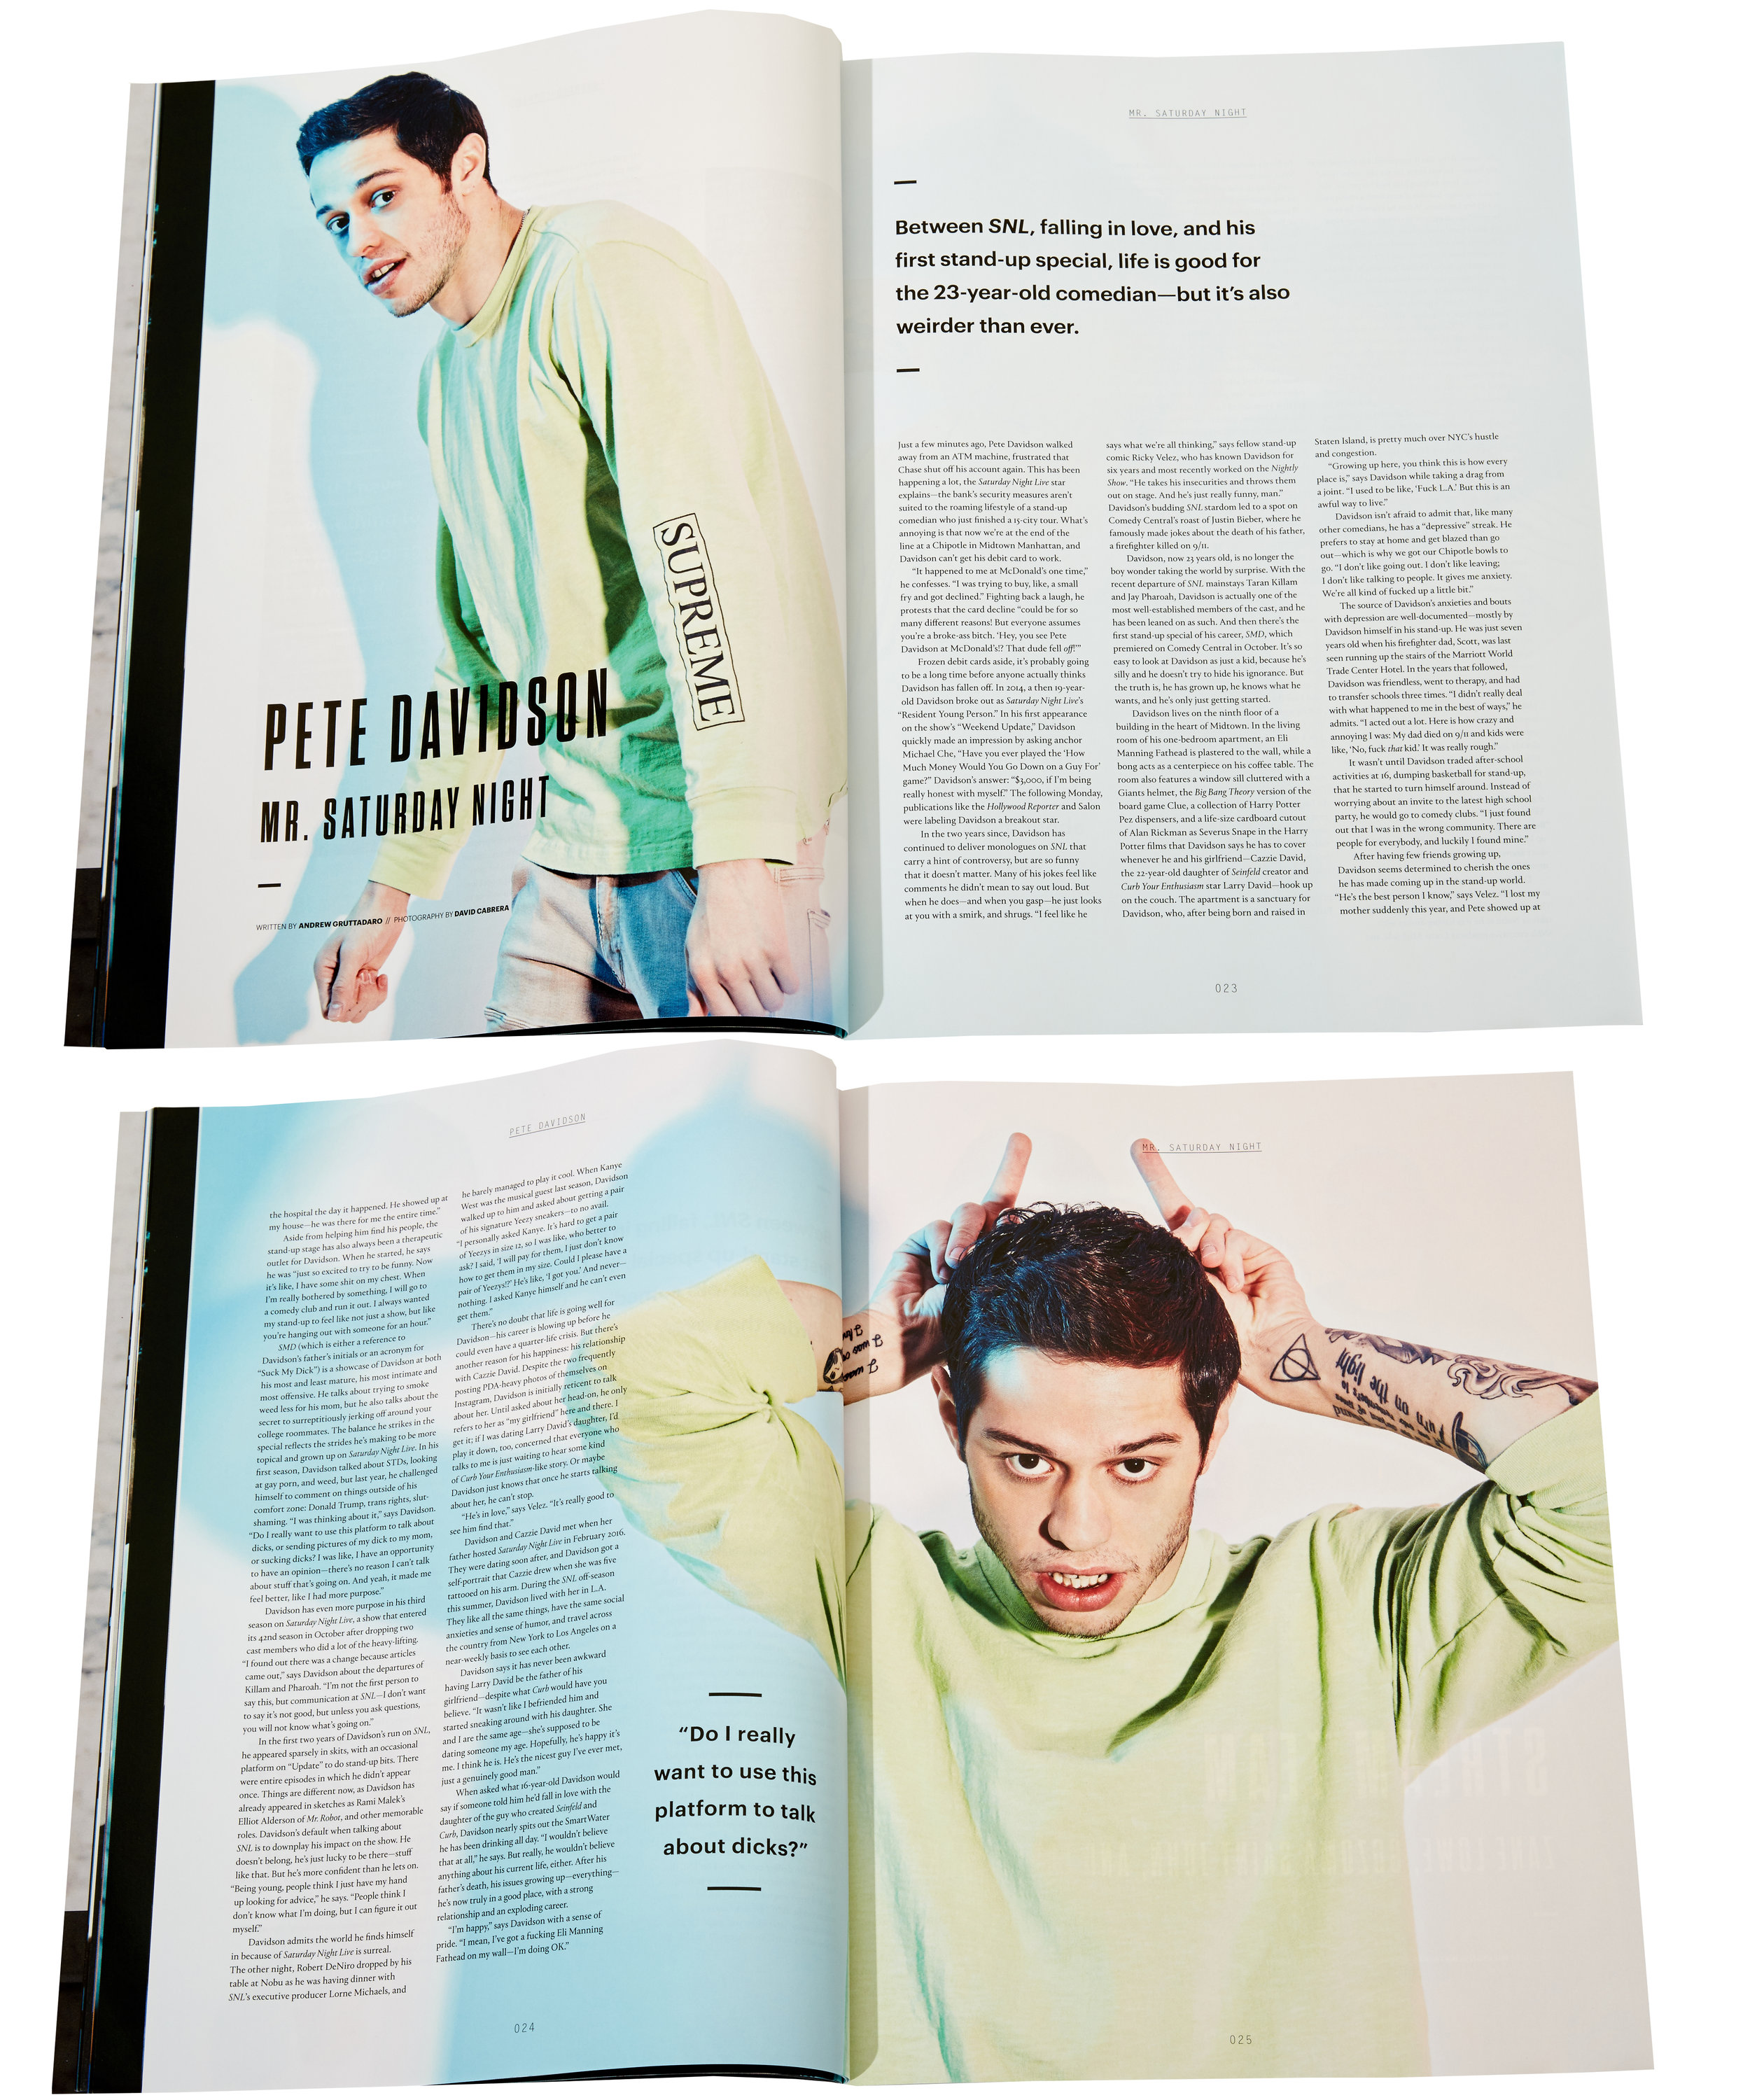 Pete Davidson - Complex - Dec 2016 / Jan 2017